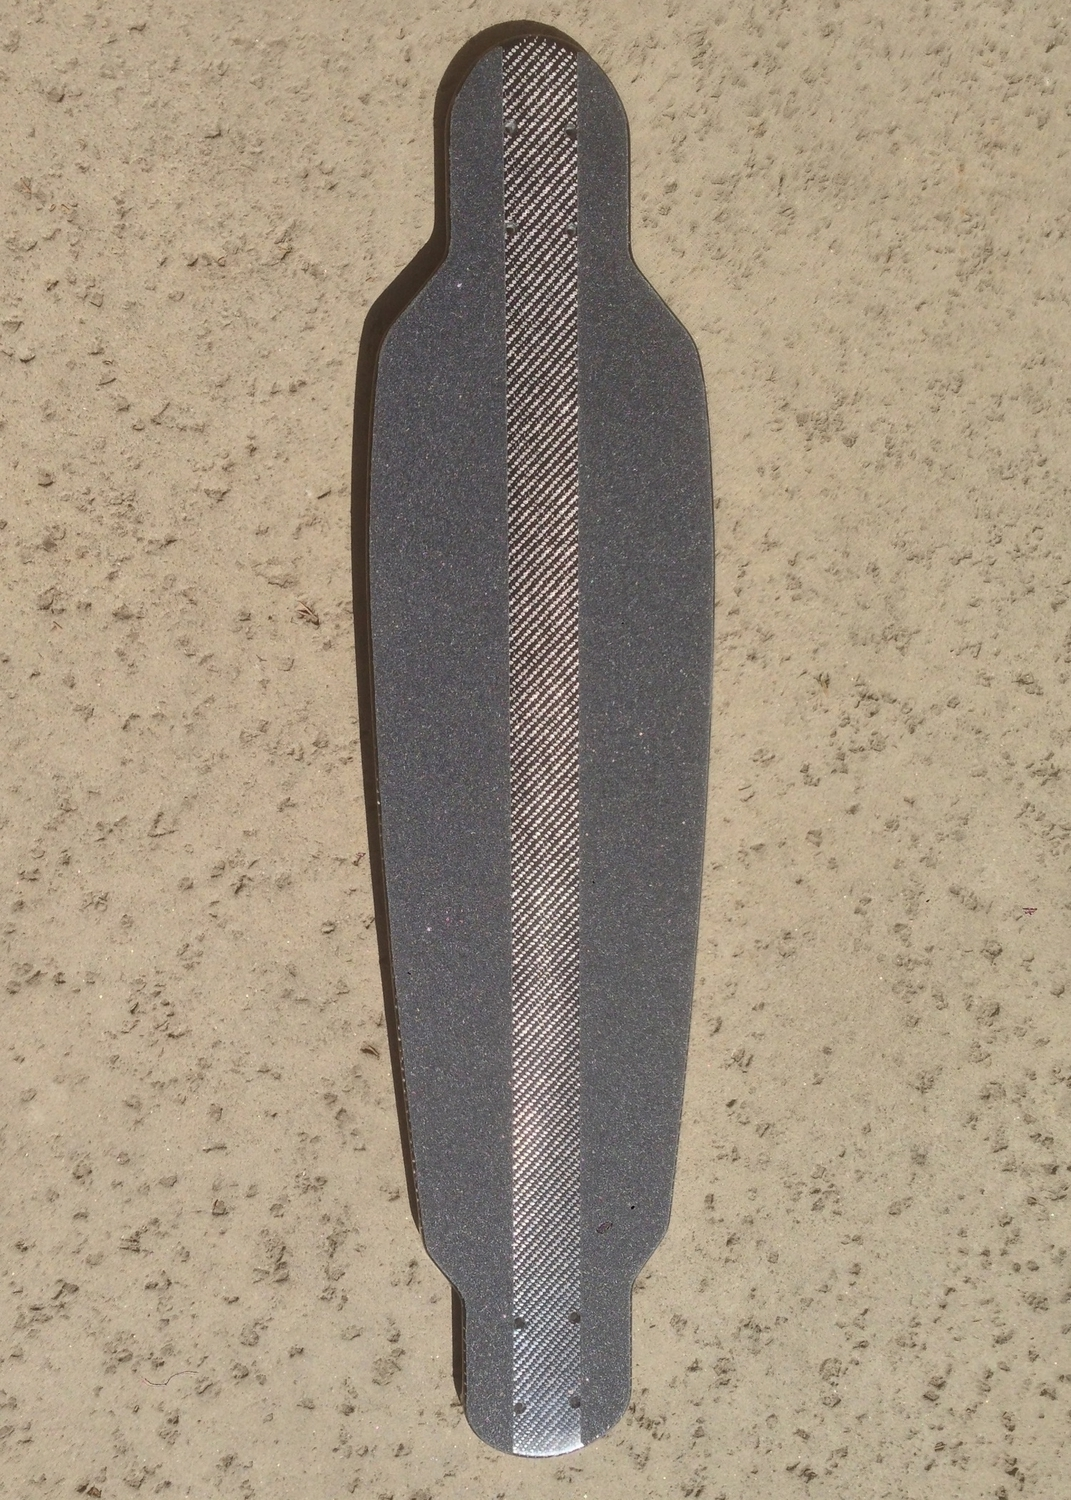 The shape if the board was 1/4 convex, 1/4 camber, with the profile shown above.